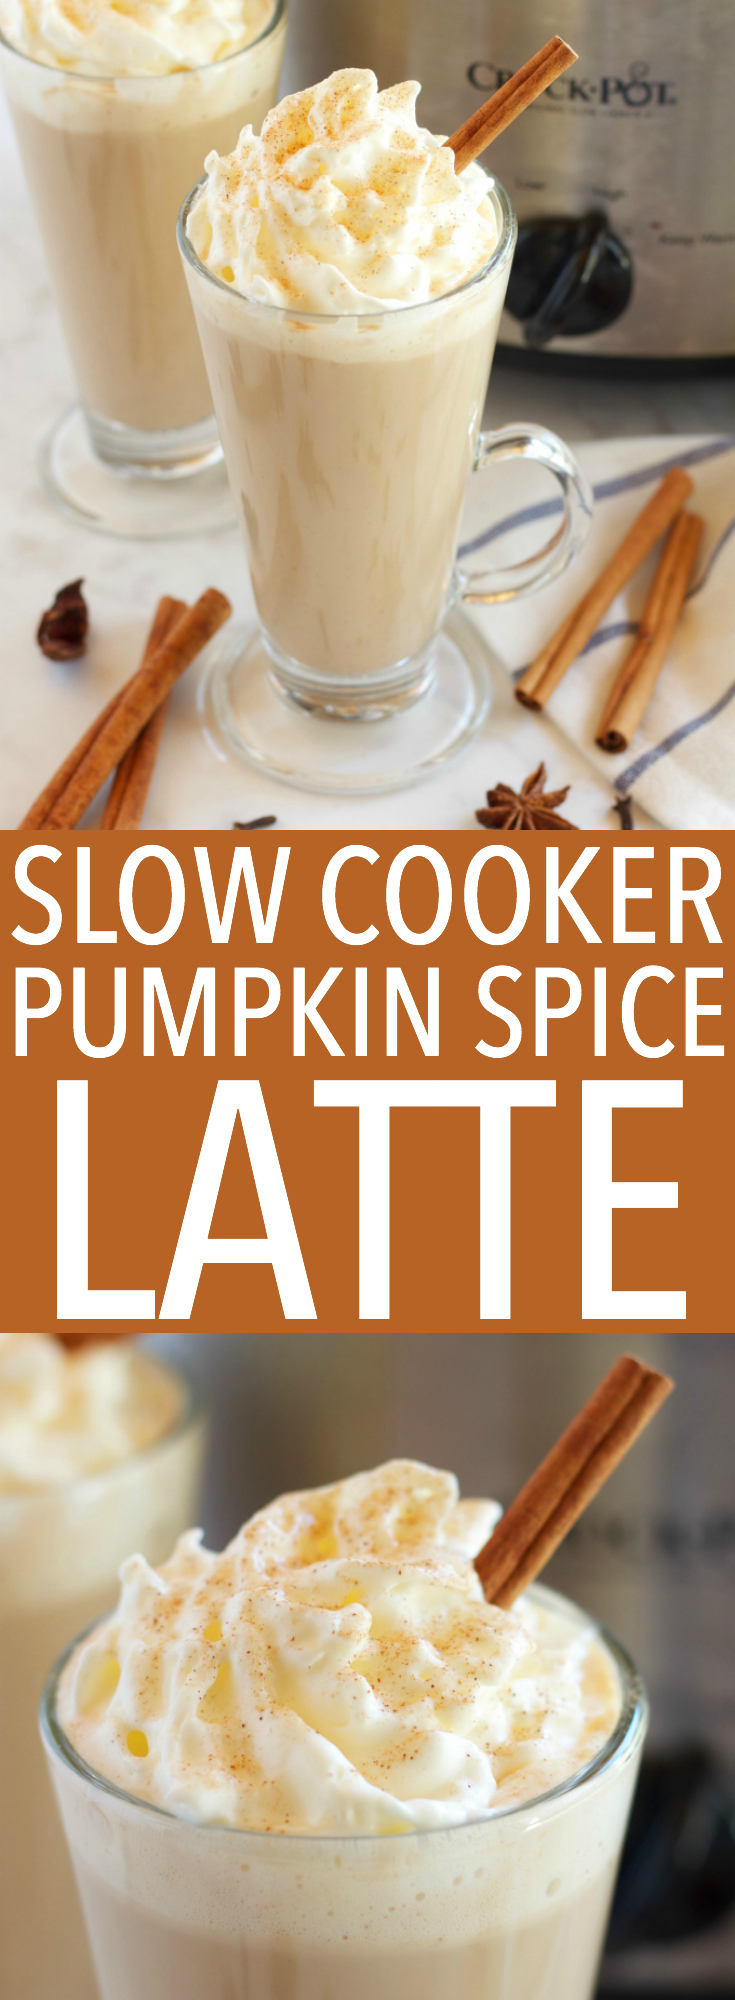 This Slow Cooker Pumpkin Spice Latte is a warm fall drink with pumpkin spice flavors, easy to make in the crock pot and perfect for parties! Recipe from thebusybaker.ca! via @busybakerblog